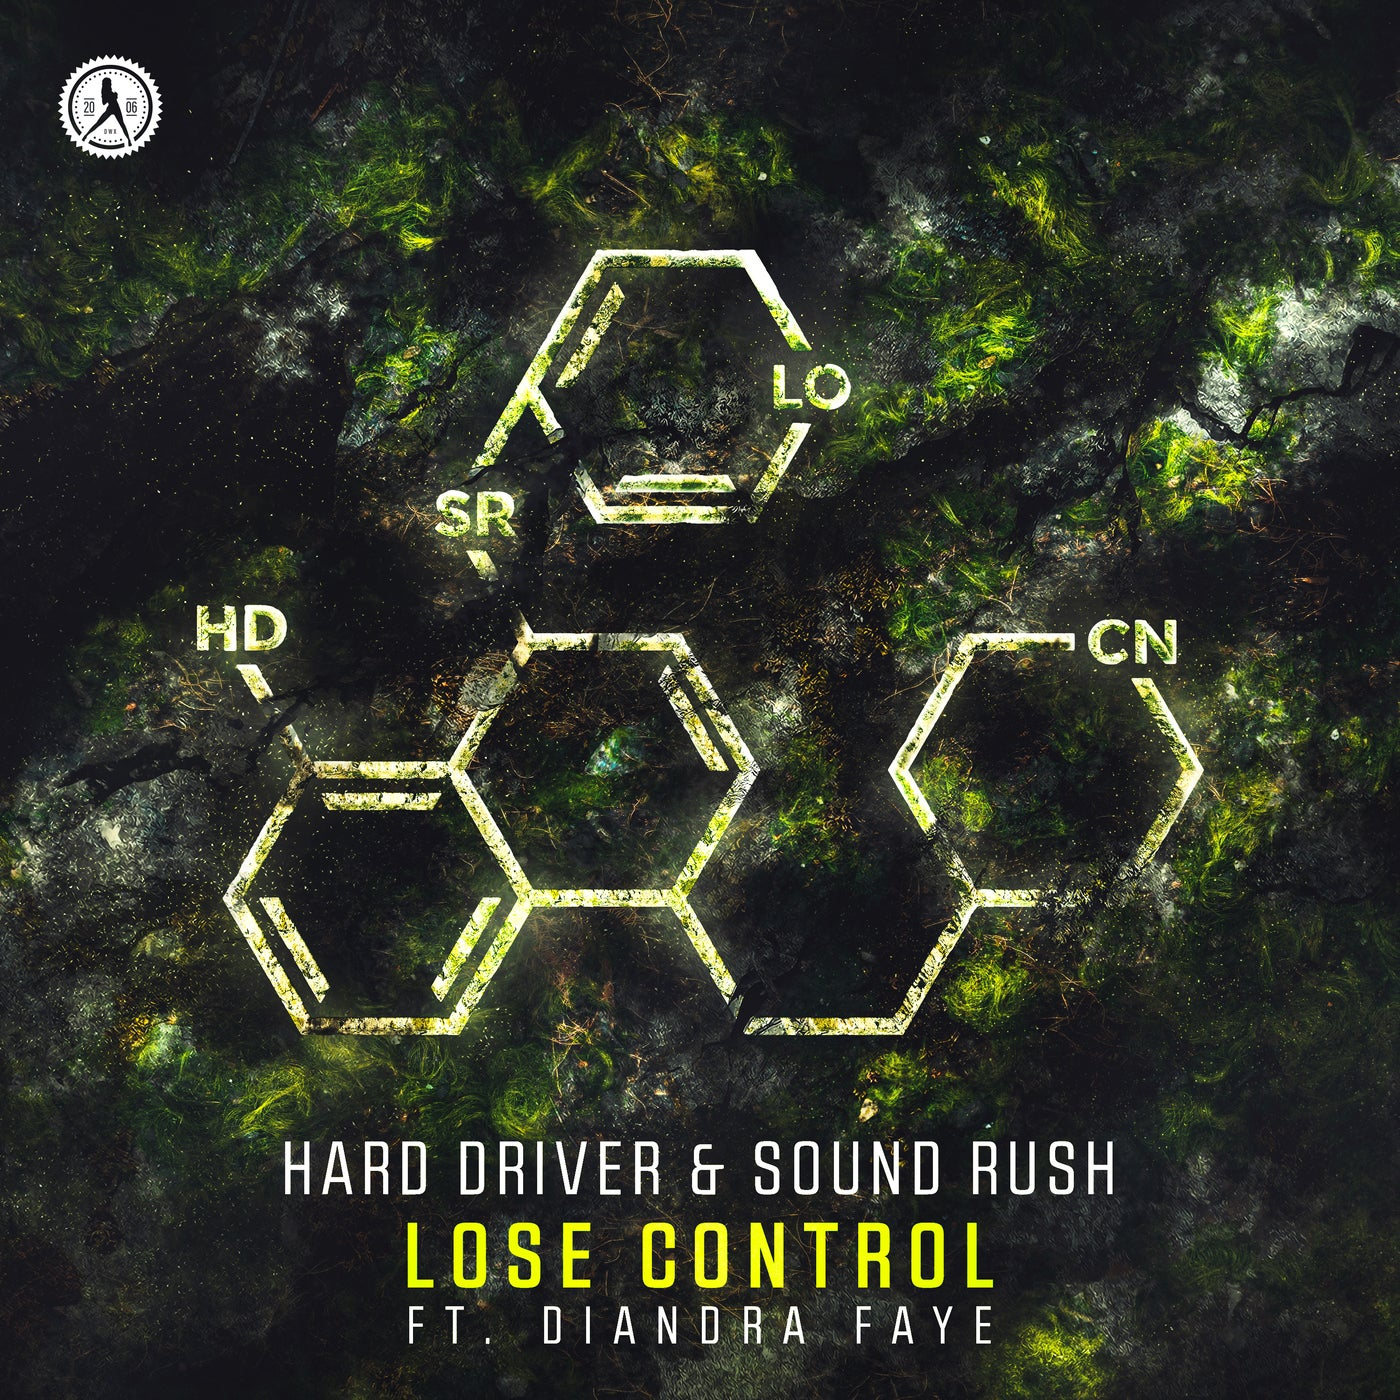 Lose Control feat. Diandra Faye (Extended Mix)